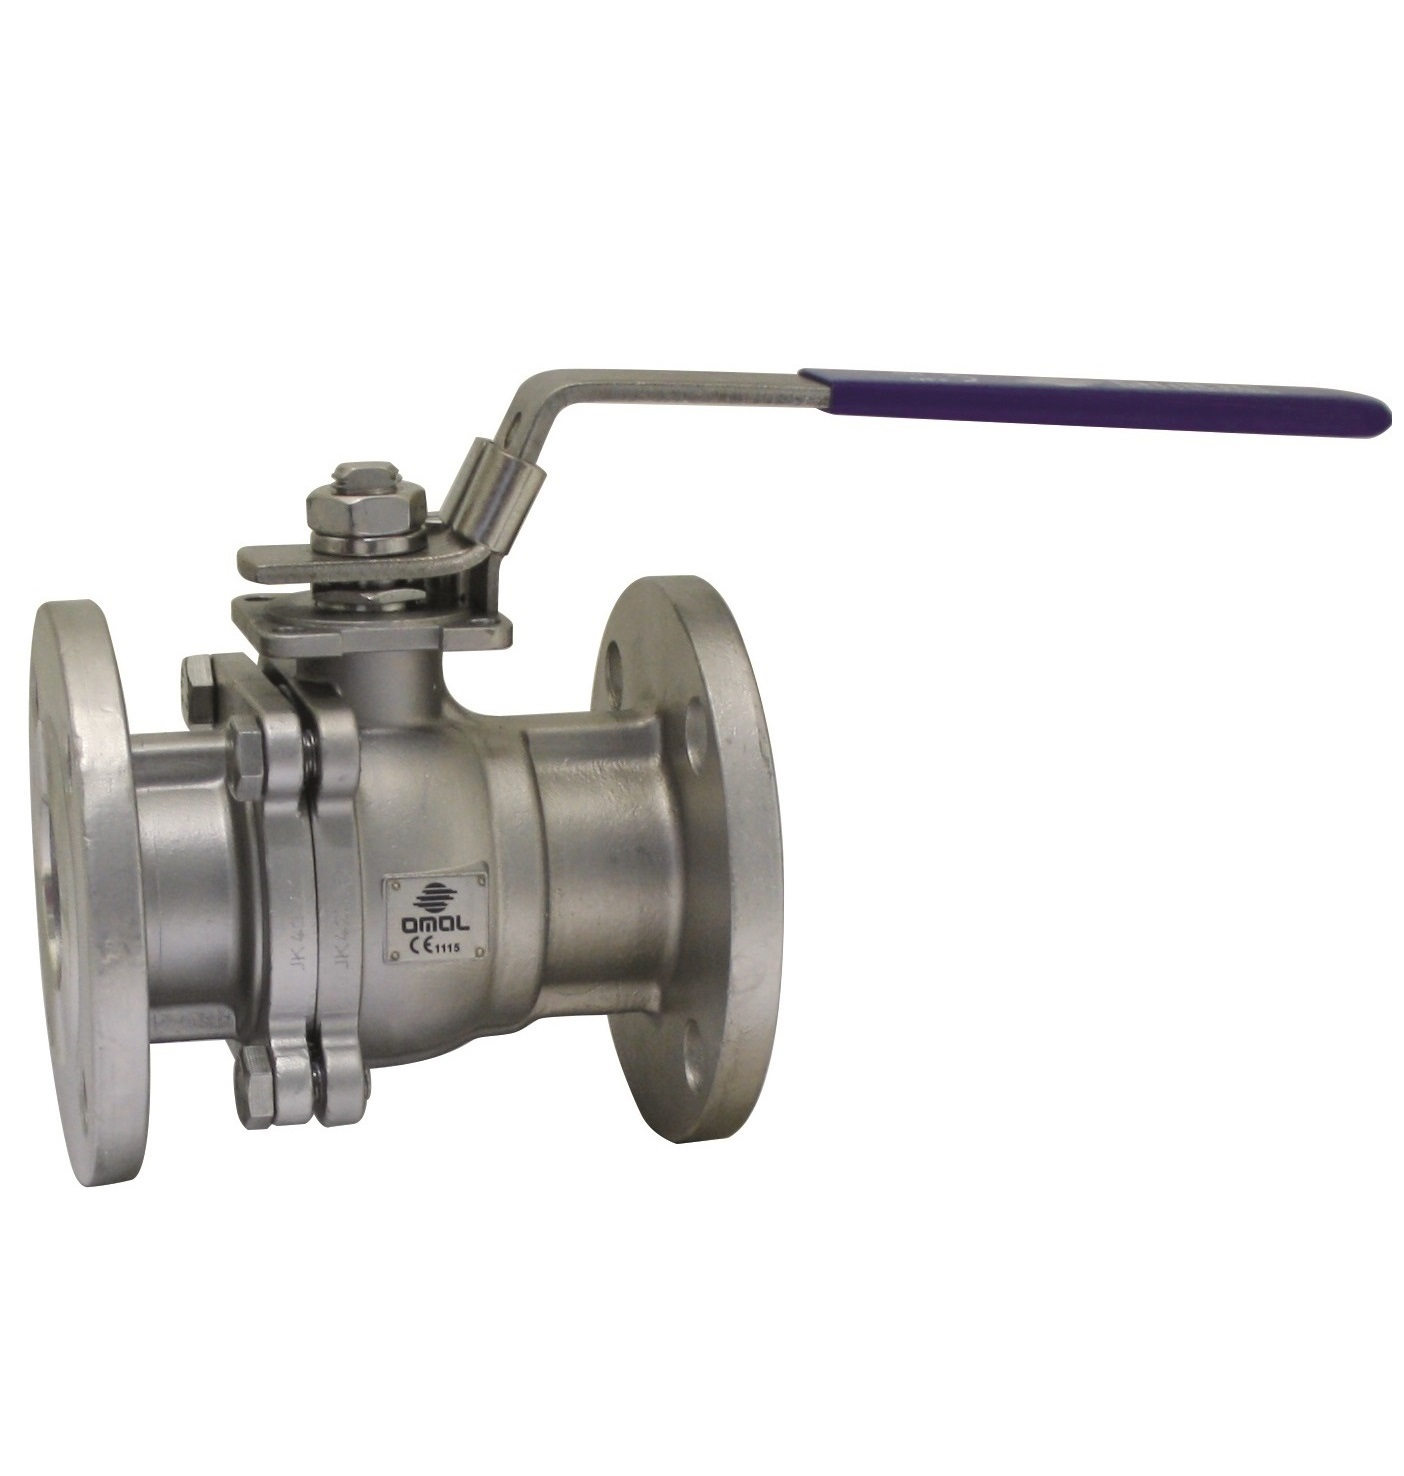 Spartan split body ball valve